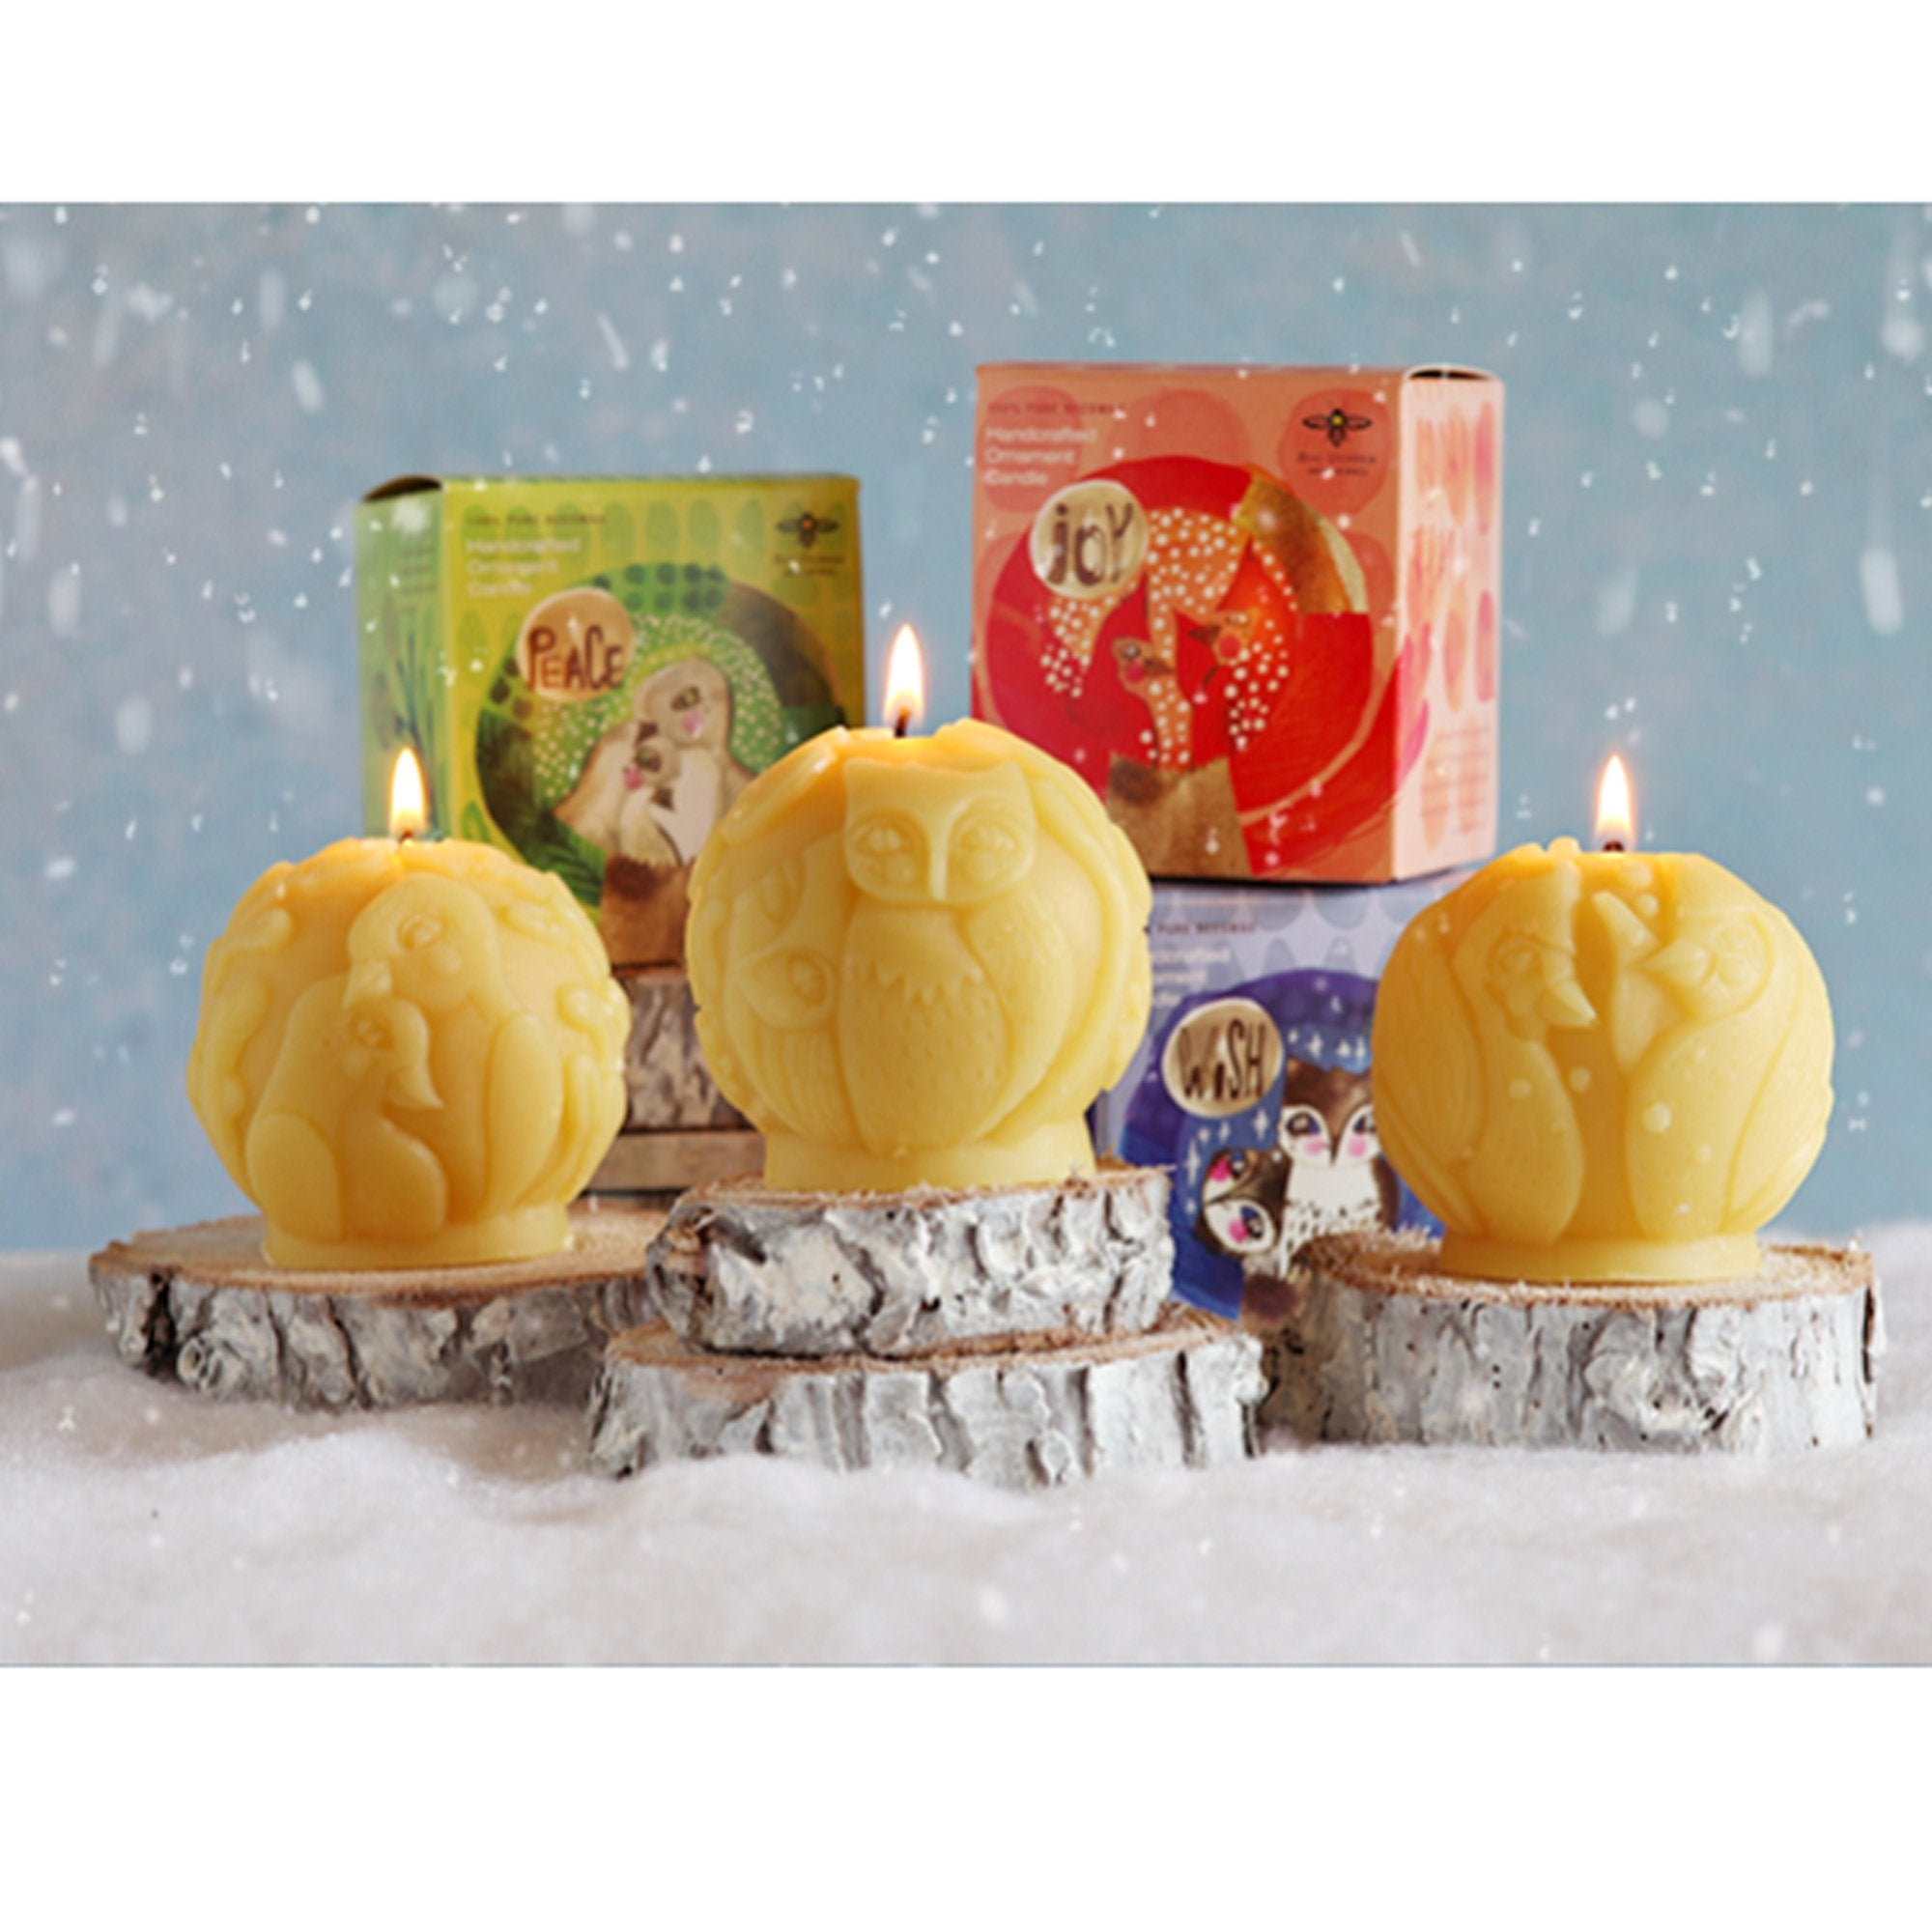 three sculpted naturally colored beeswax candles and three packages set in snowy environment. designs include doves, owls, cardinals.